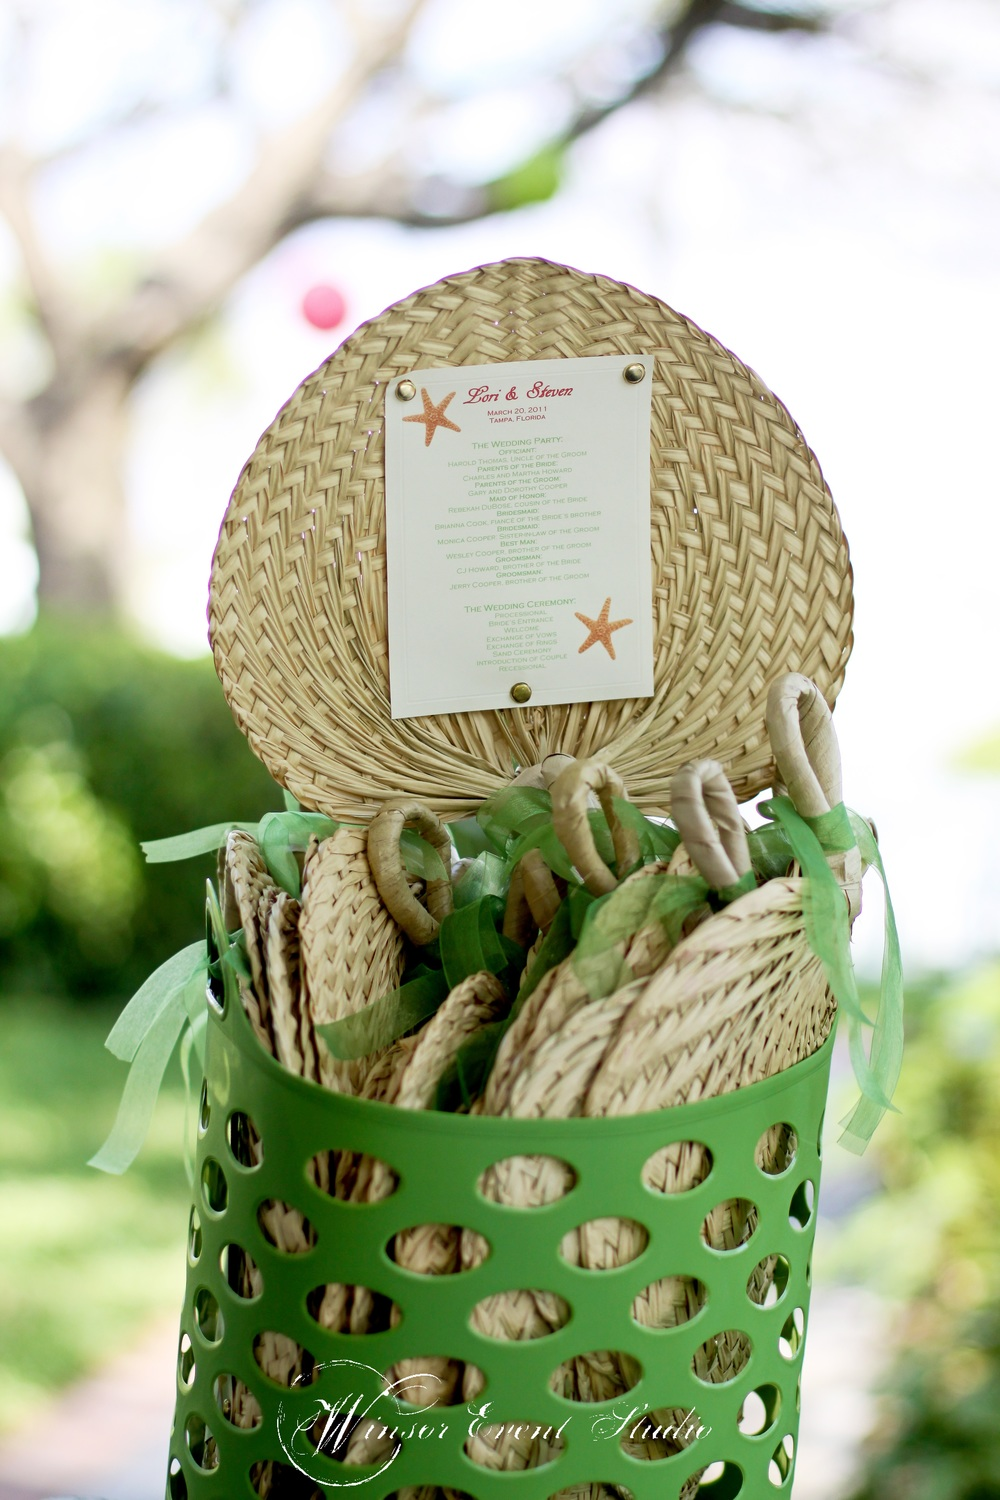 Woven raffia fans doubled as ceremony programs